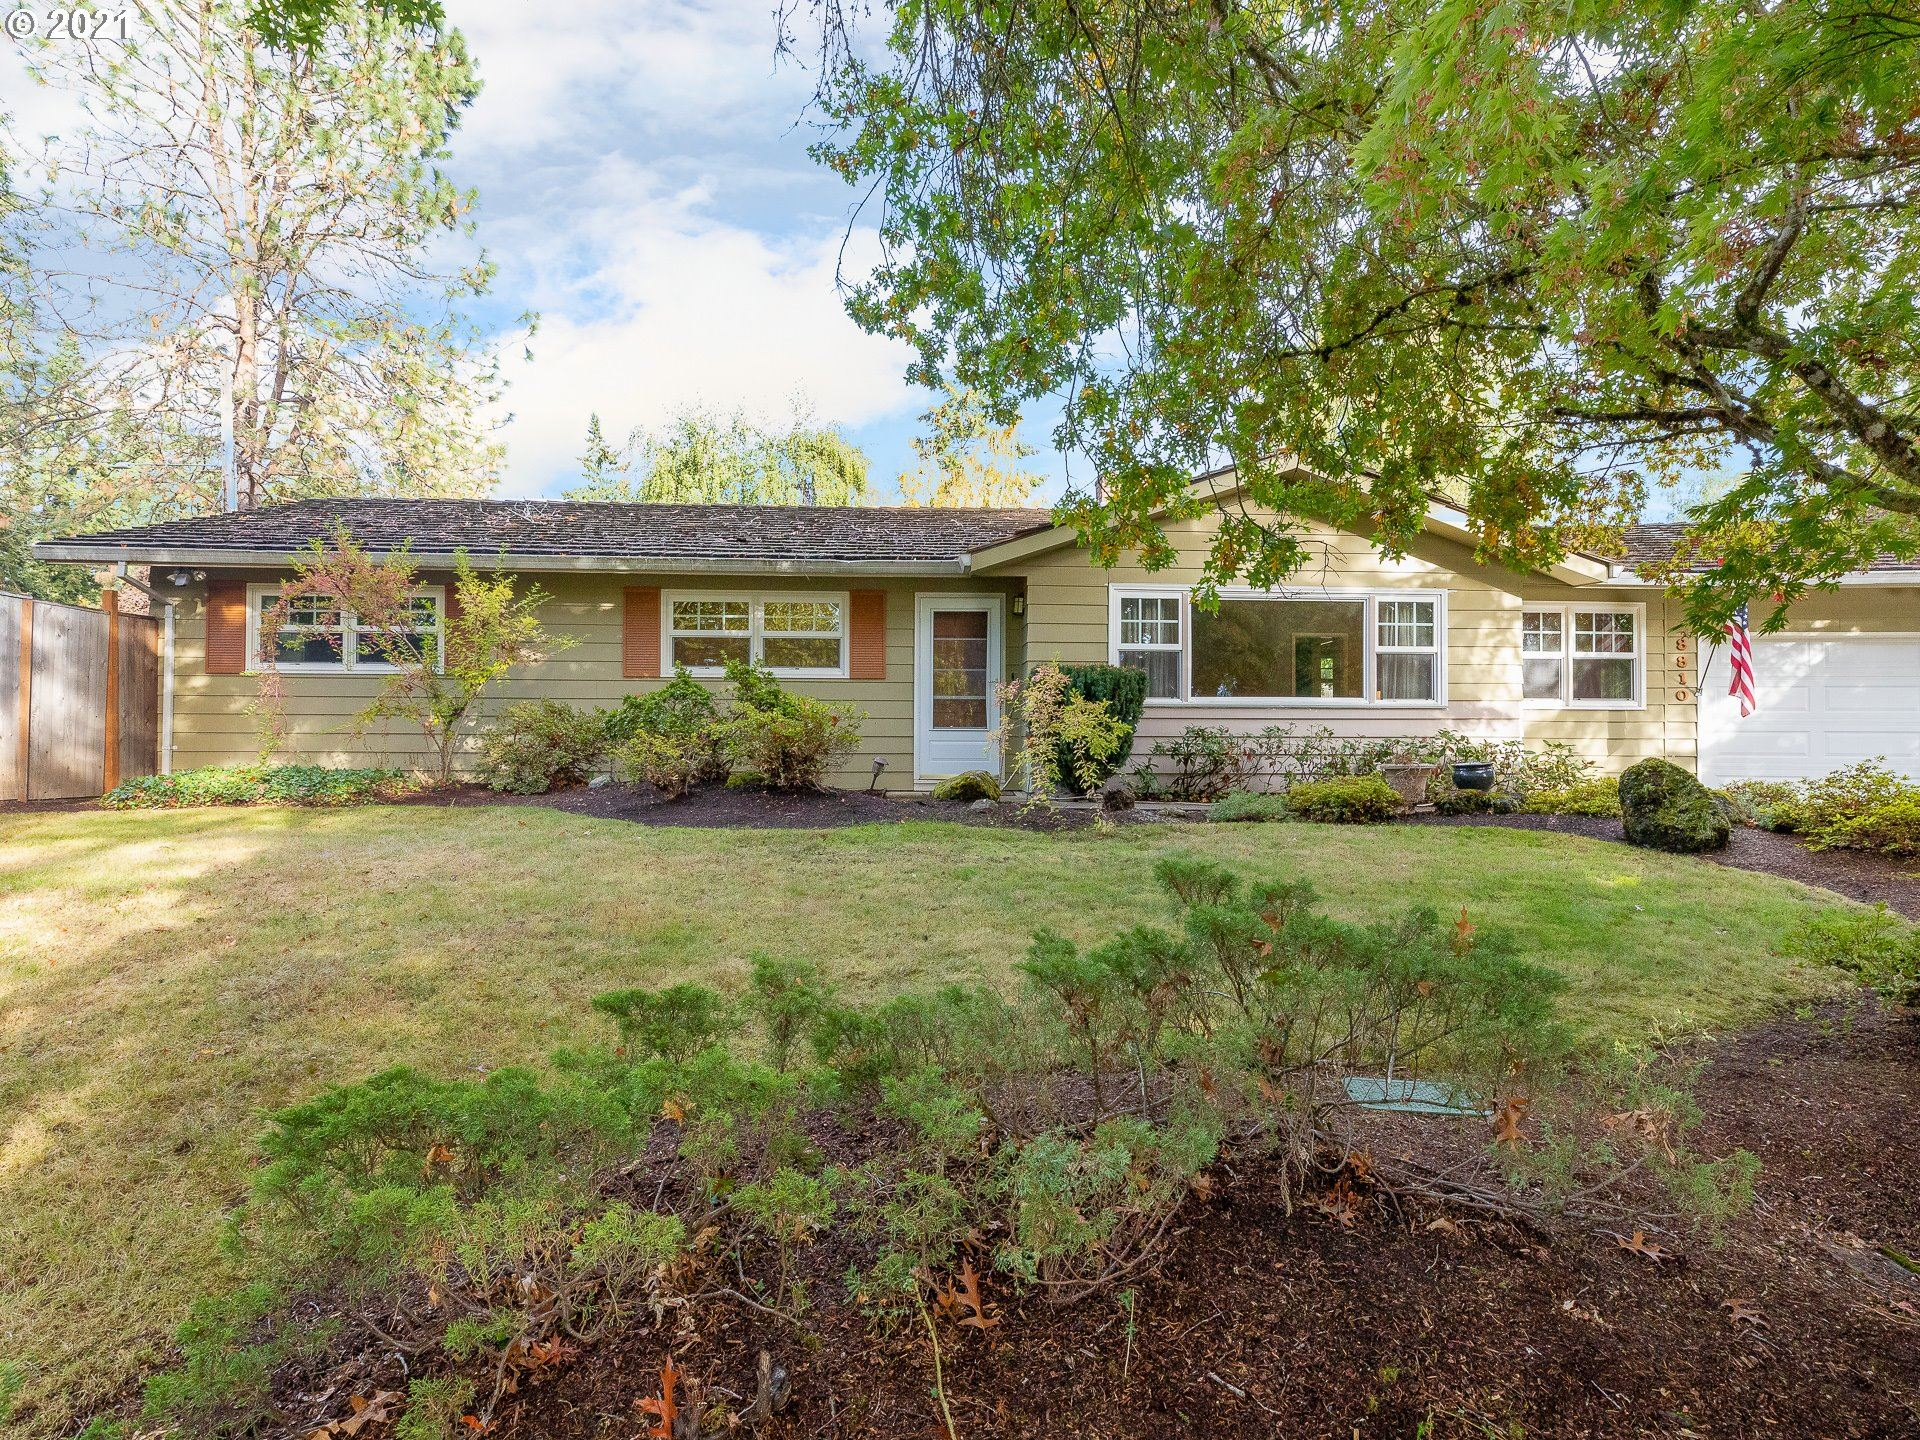 8810 SW 56TH AVE, Portland, OR 97219 - MLS#: 21314962